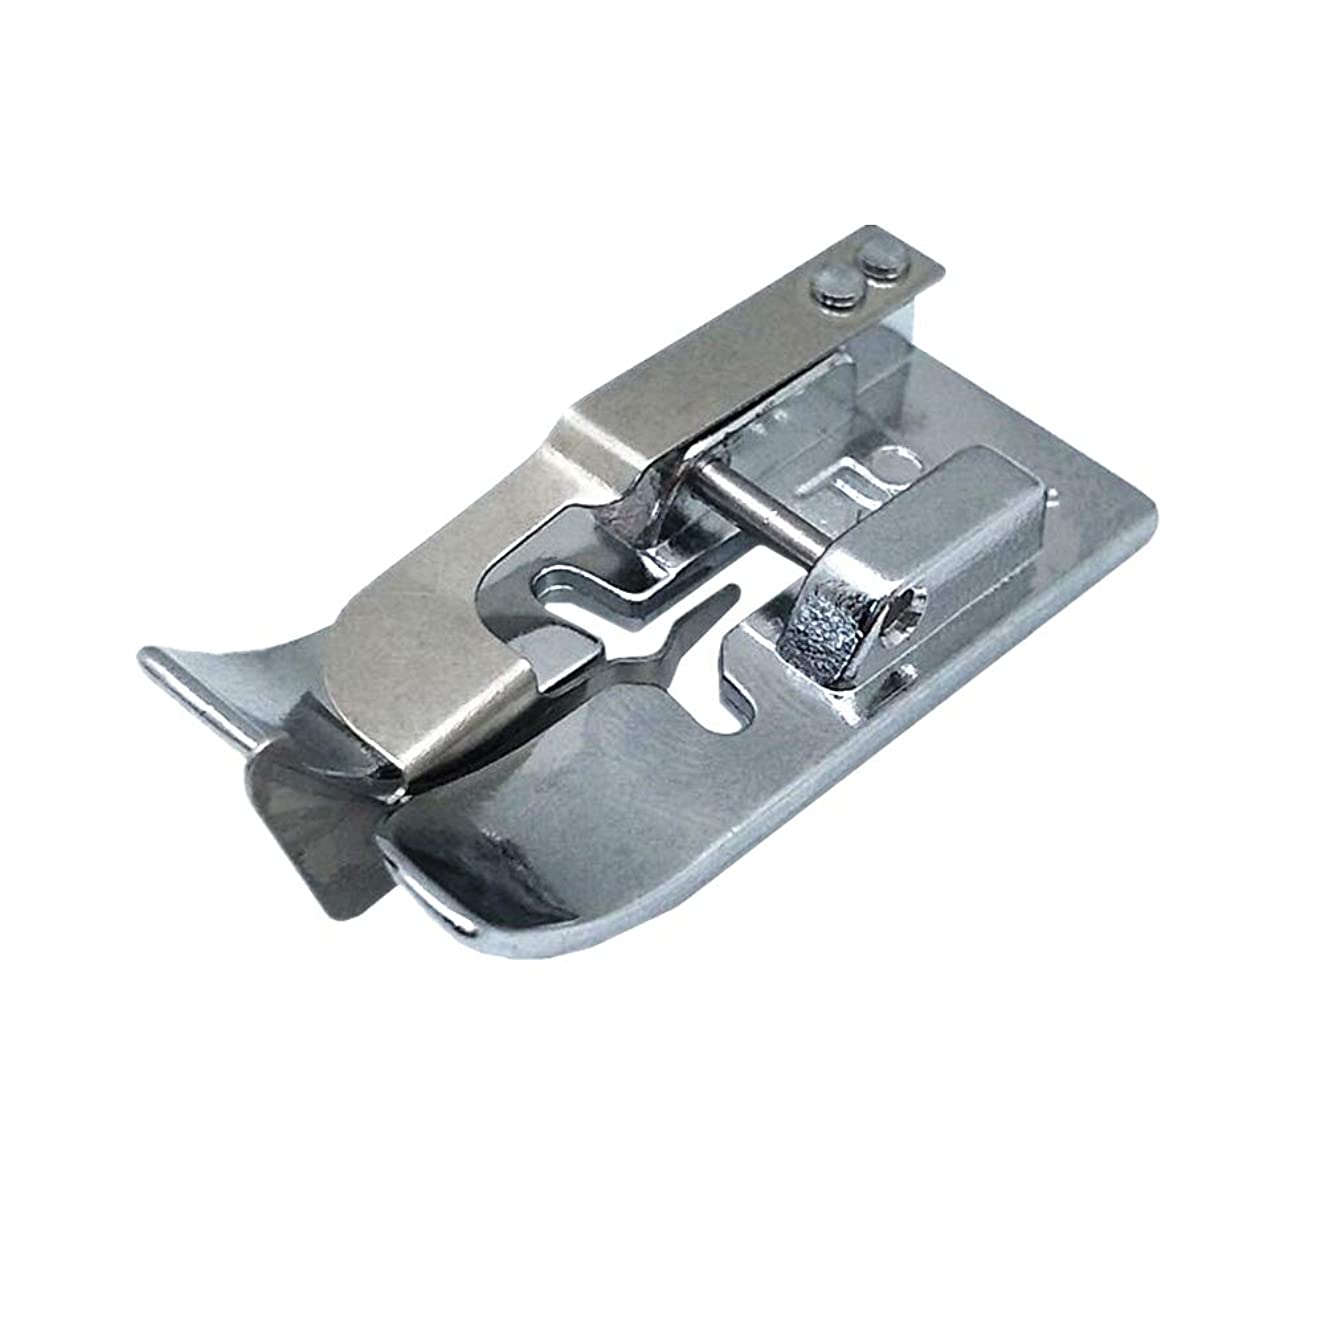 YEQIN Blind Hem Presser Foot (R) #X56409001 to fit Brother babylock New Singer Sewing Machines